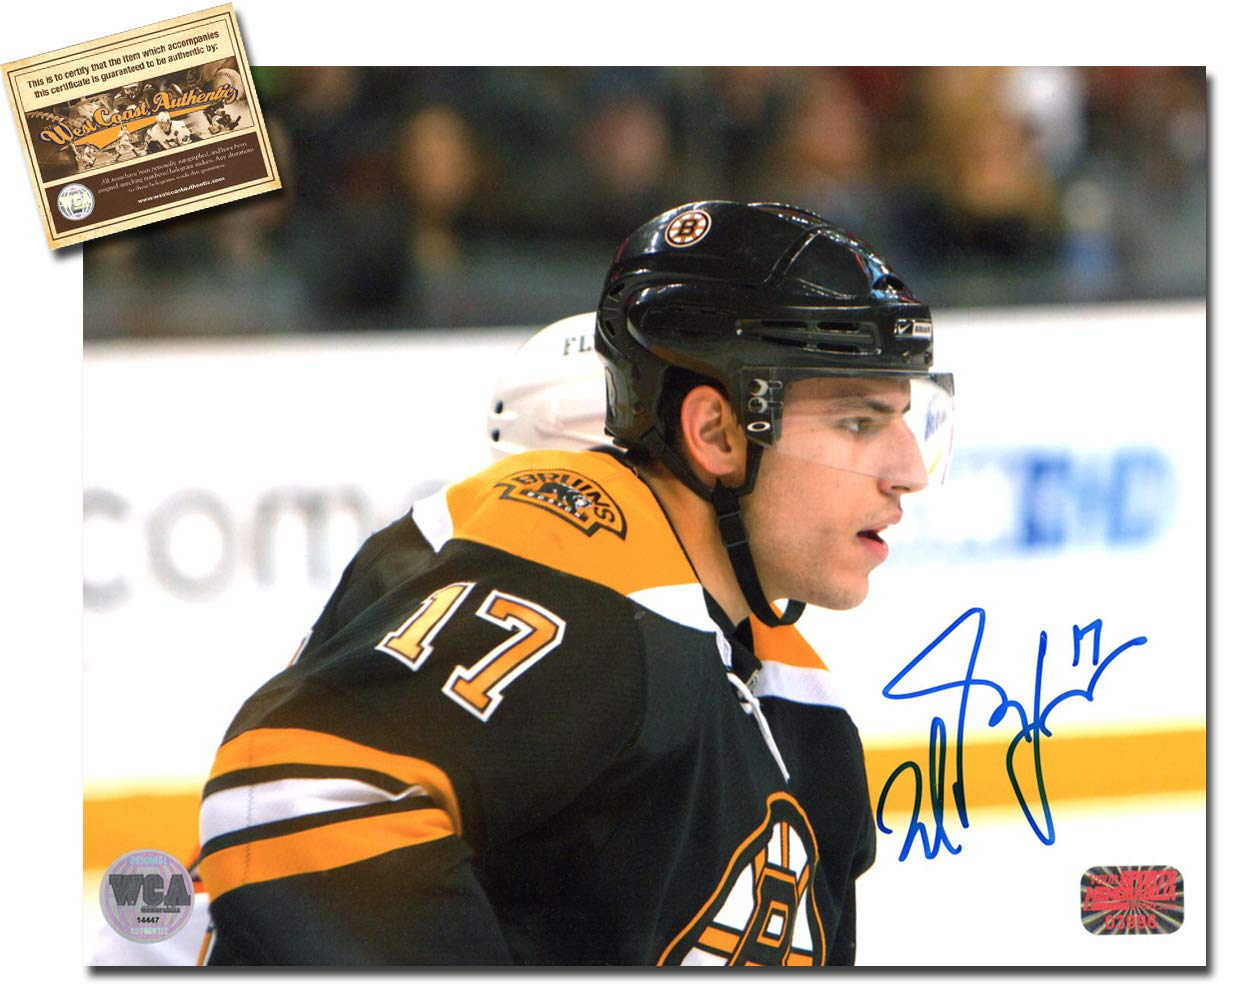 Milan Lucic Autographed Signed 8x10 Hockey Photo Memorabilia Certified with WCA Dual Authentication Holograms and COA West Coast Authentic